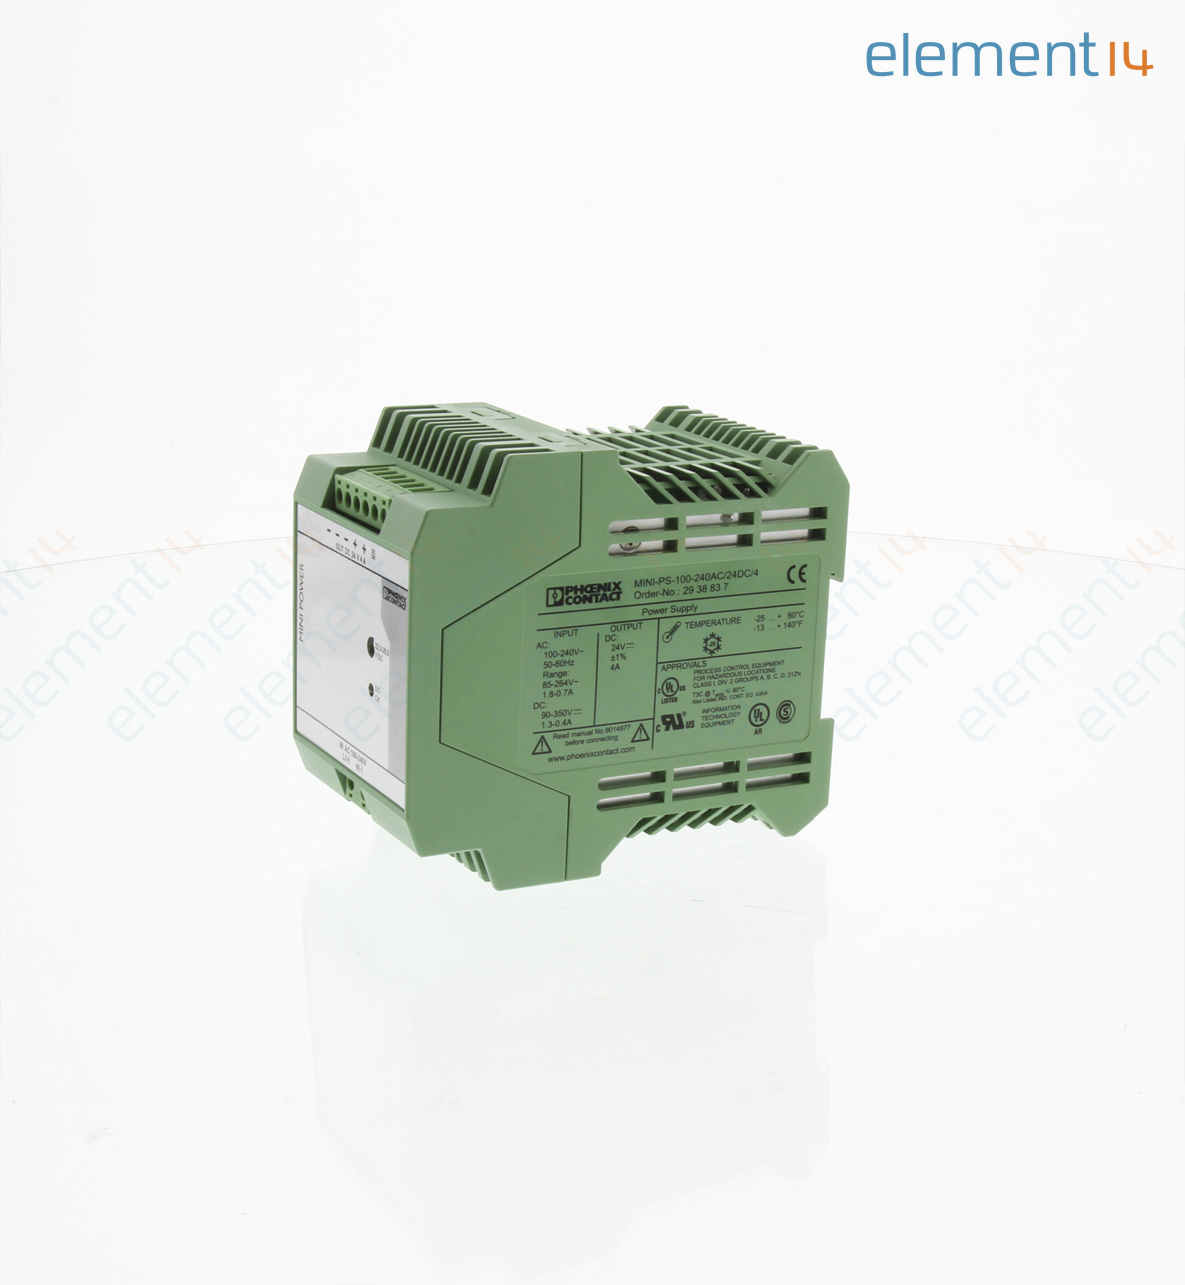 Mini Ps 100 240ac 24dc 4 Phoenix Contact Ac Dc Din Rail Power Electronics Learning Circuits Webonly Products Technology Add To Compare